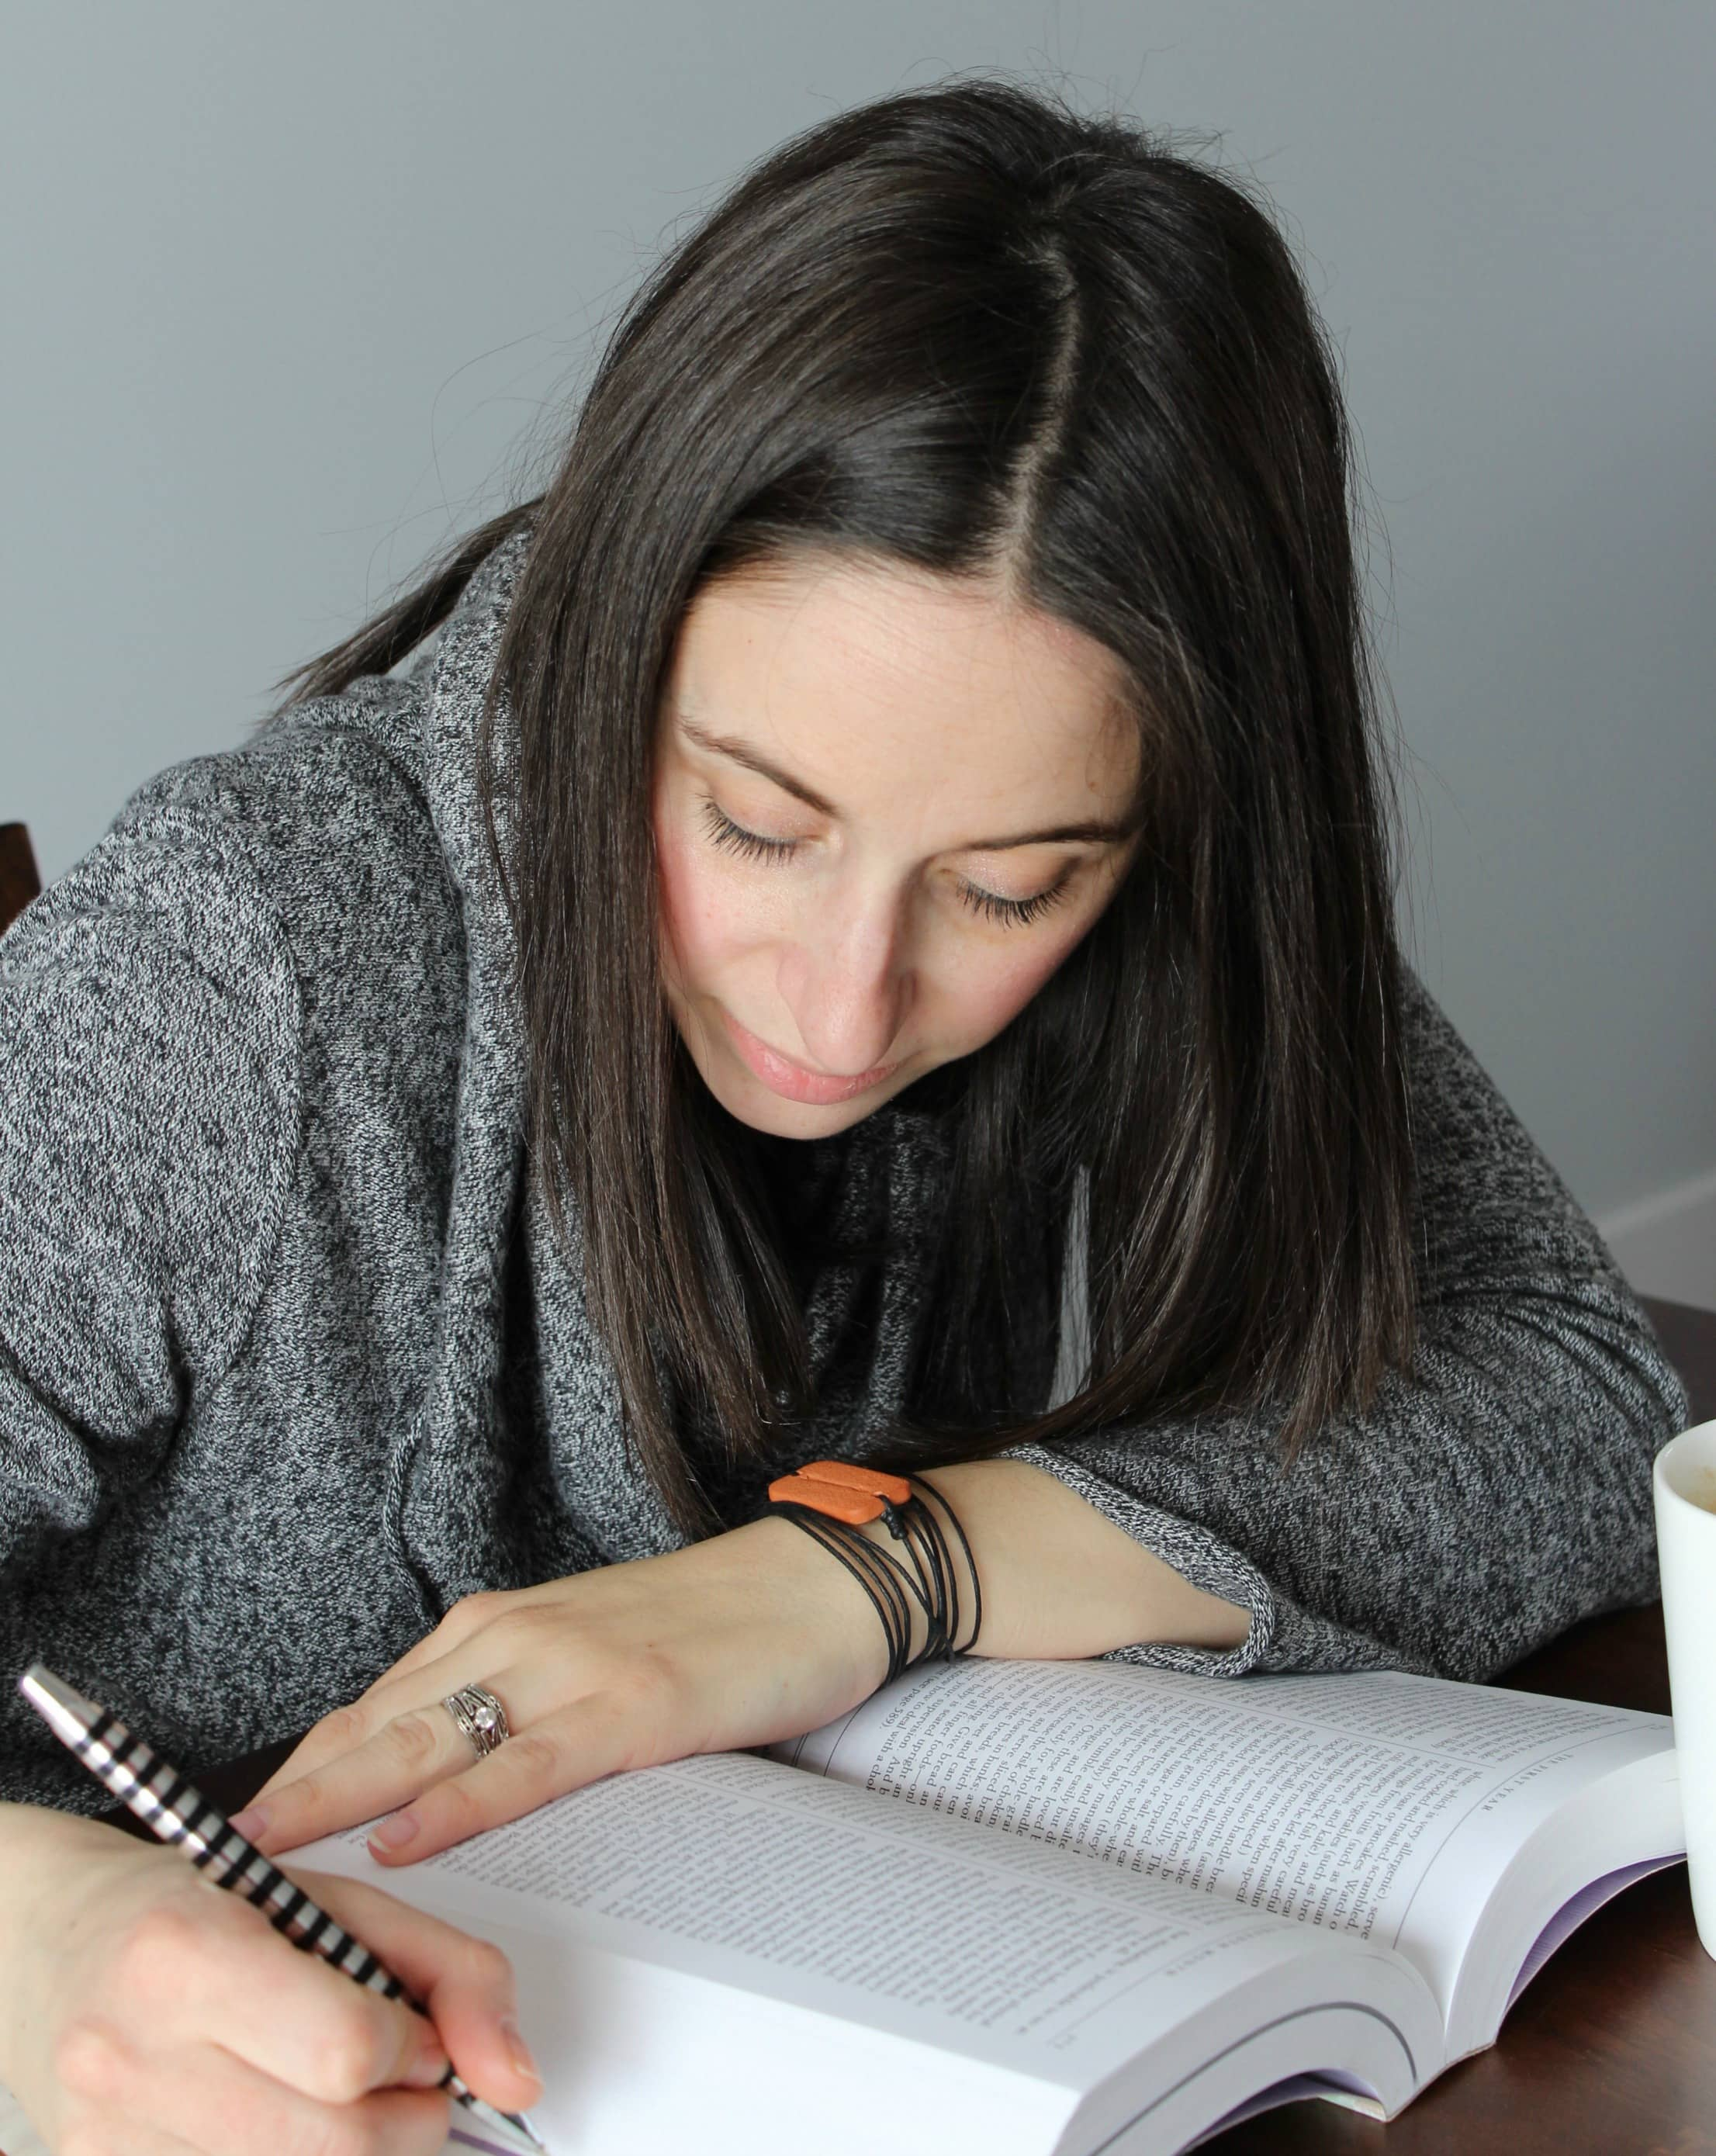 The Arrow Wrap Diffuser Bracelet is perfect for diffusing essential oils while studying